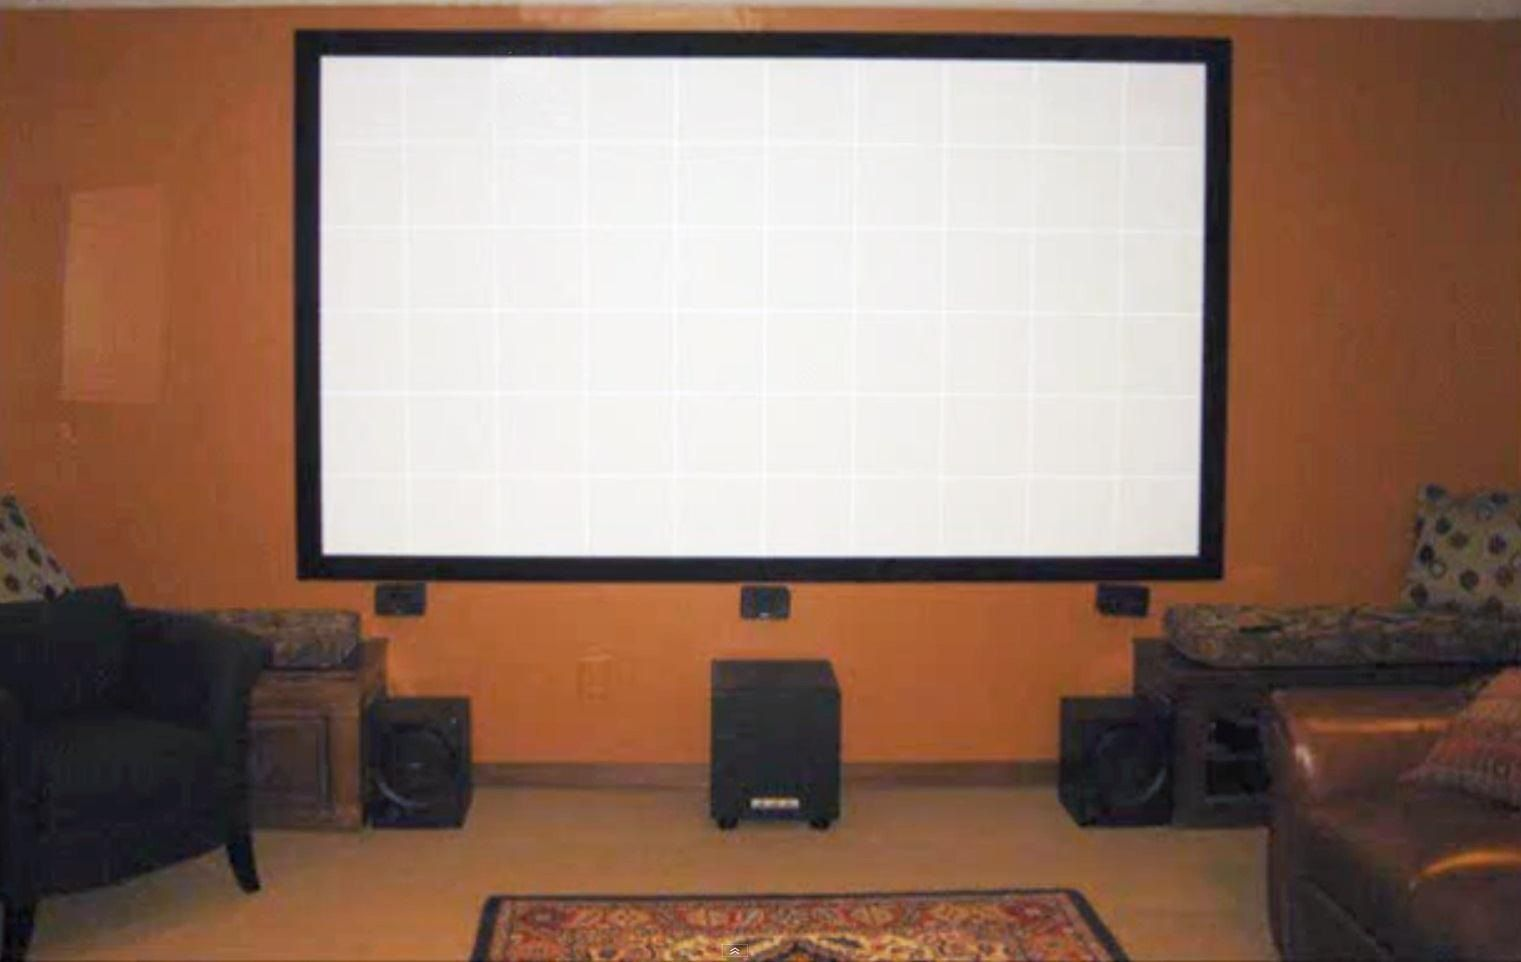 How To Build Your Own Projector Screen At Home For Less Than Fifty Bucks Projector Screen Diy Projector Wall Diy Projector